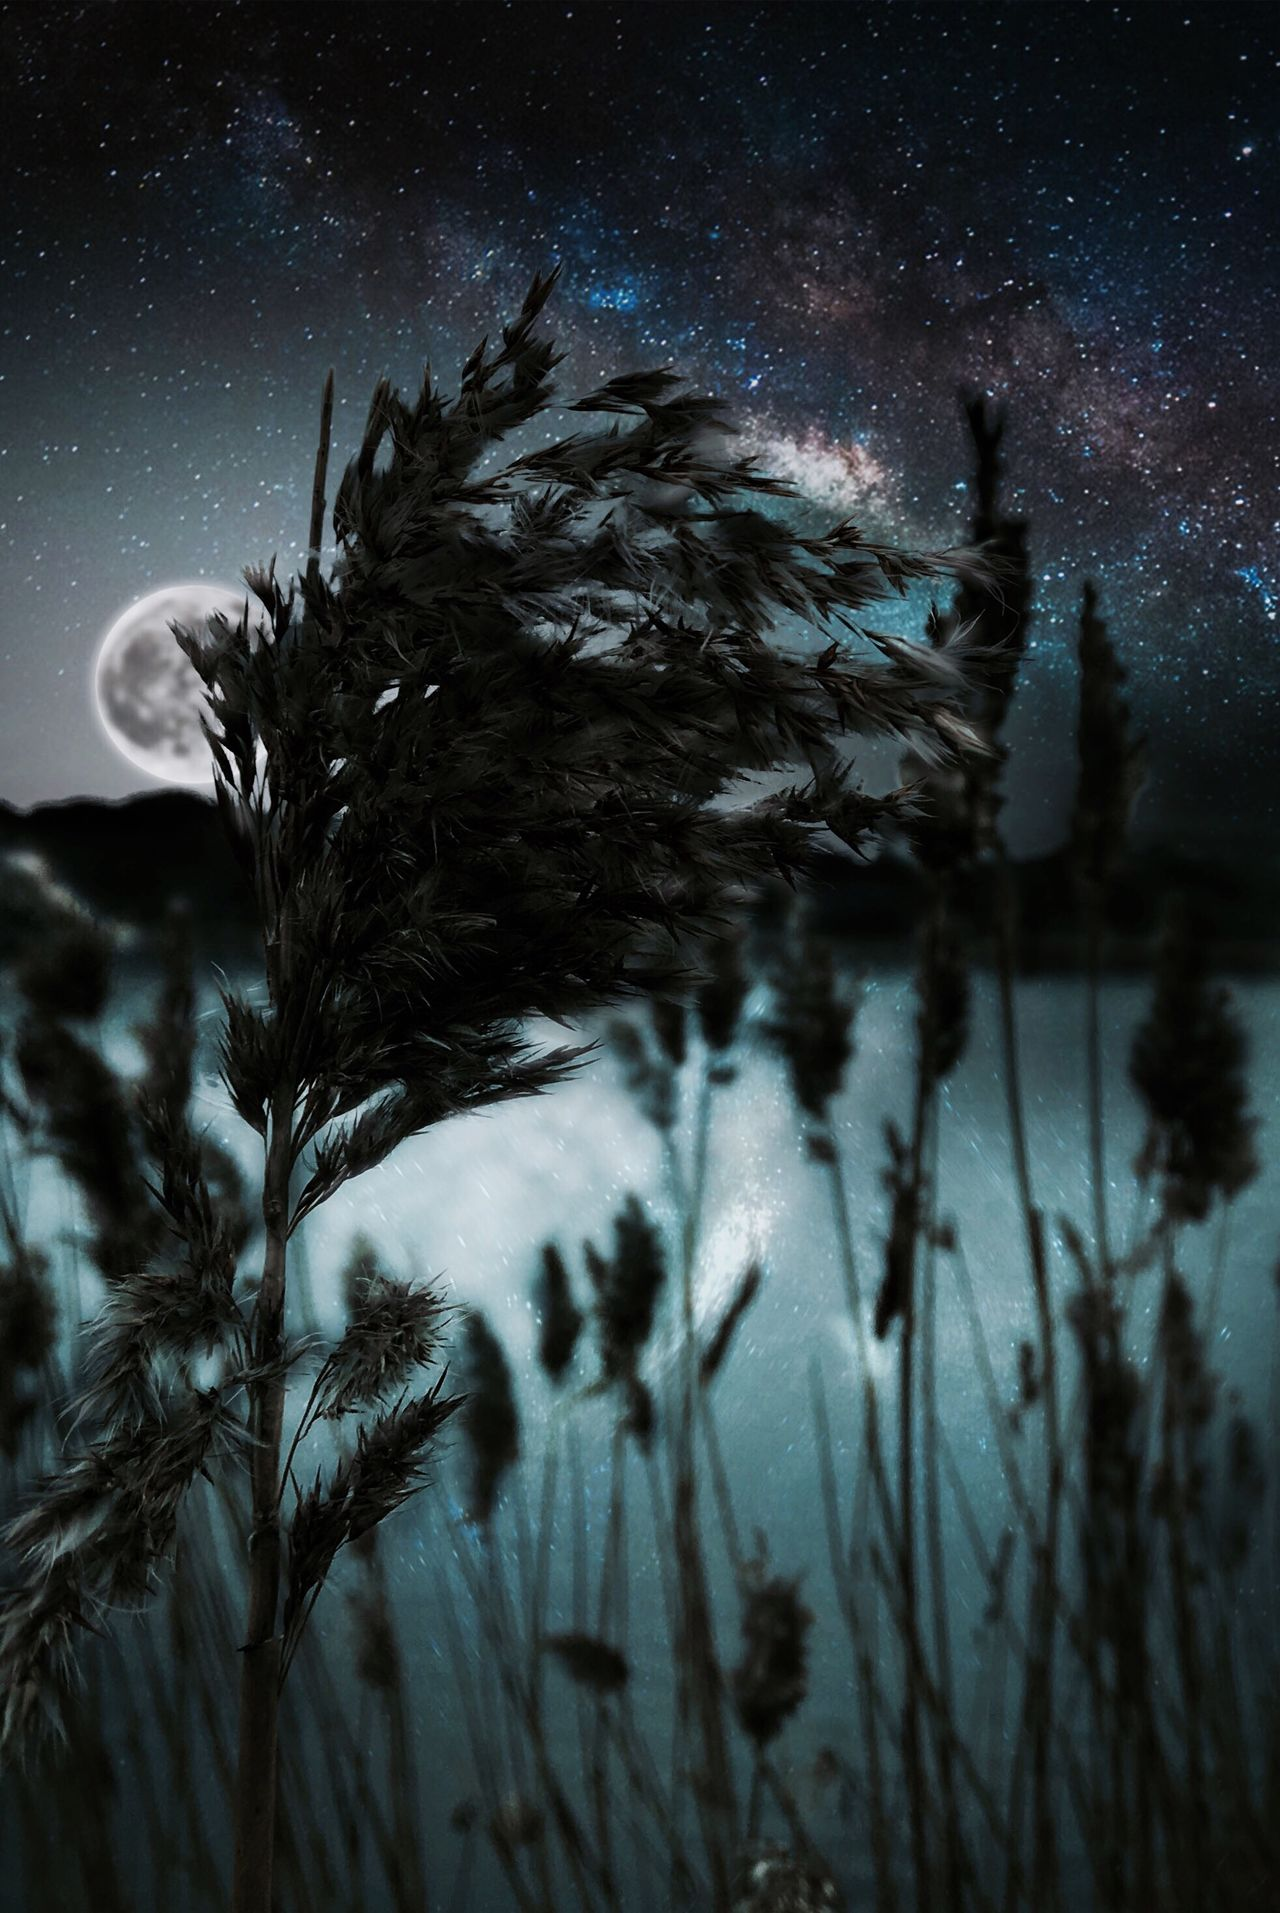 Without the dark, we would not see the stars ✨ Star - Space Sky Nature Beauty In Nature Tree Night Astronomy Milky Way No People Galaxy Winter Snow Scenics Star Field Space Outdoors Close-up EyeEm Best Shots EyeEm Nature Lover EyeEm Best Edits EyeEmNewHere EyeEmNewHere